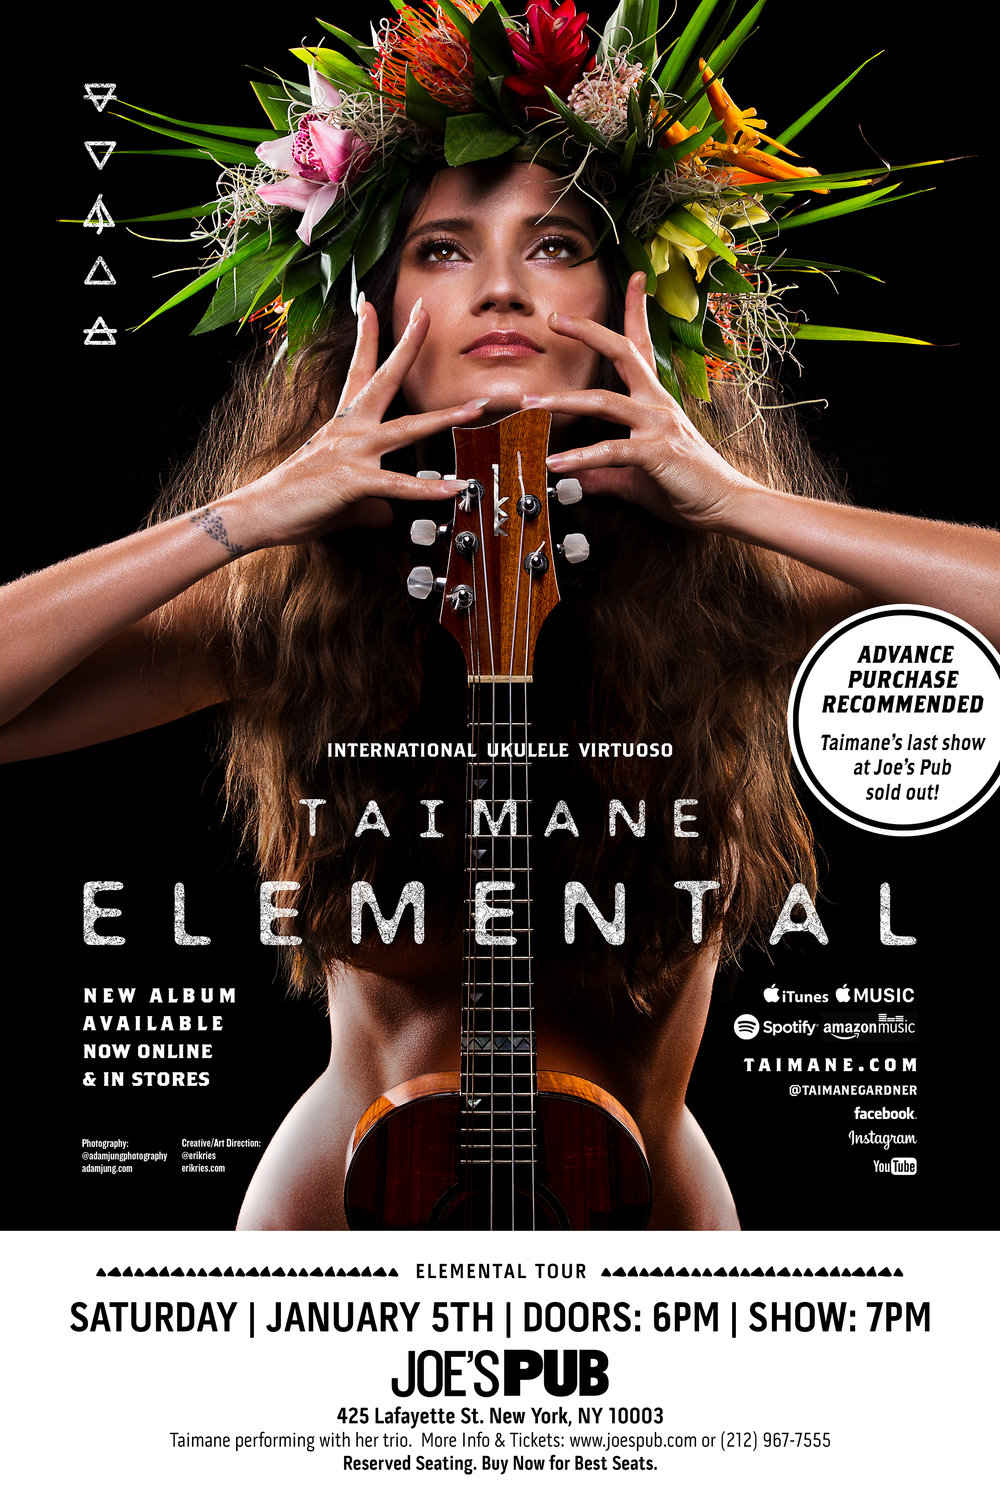 Taimane Elemental 24x36 - JOE'S Pub SOLD OUT_v2_lr2400x3600.jpg